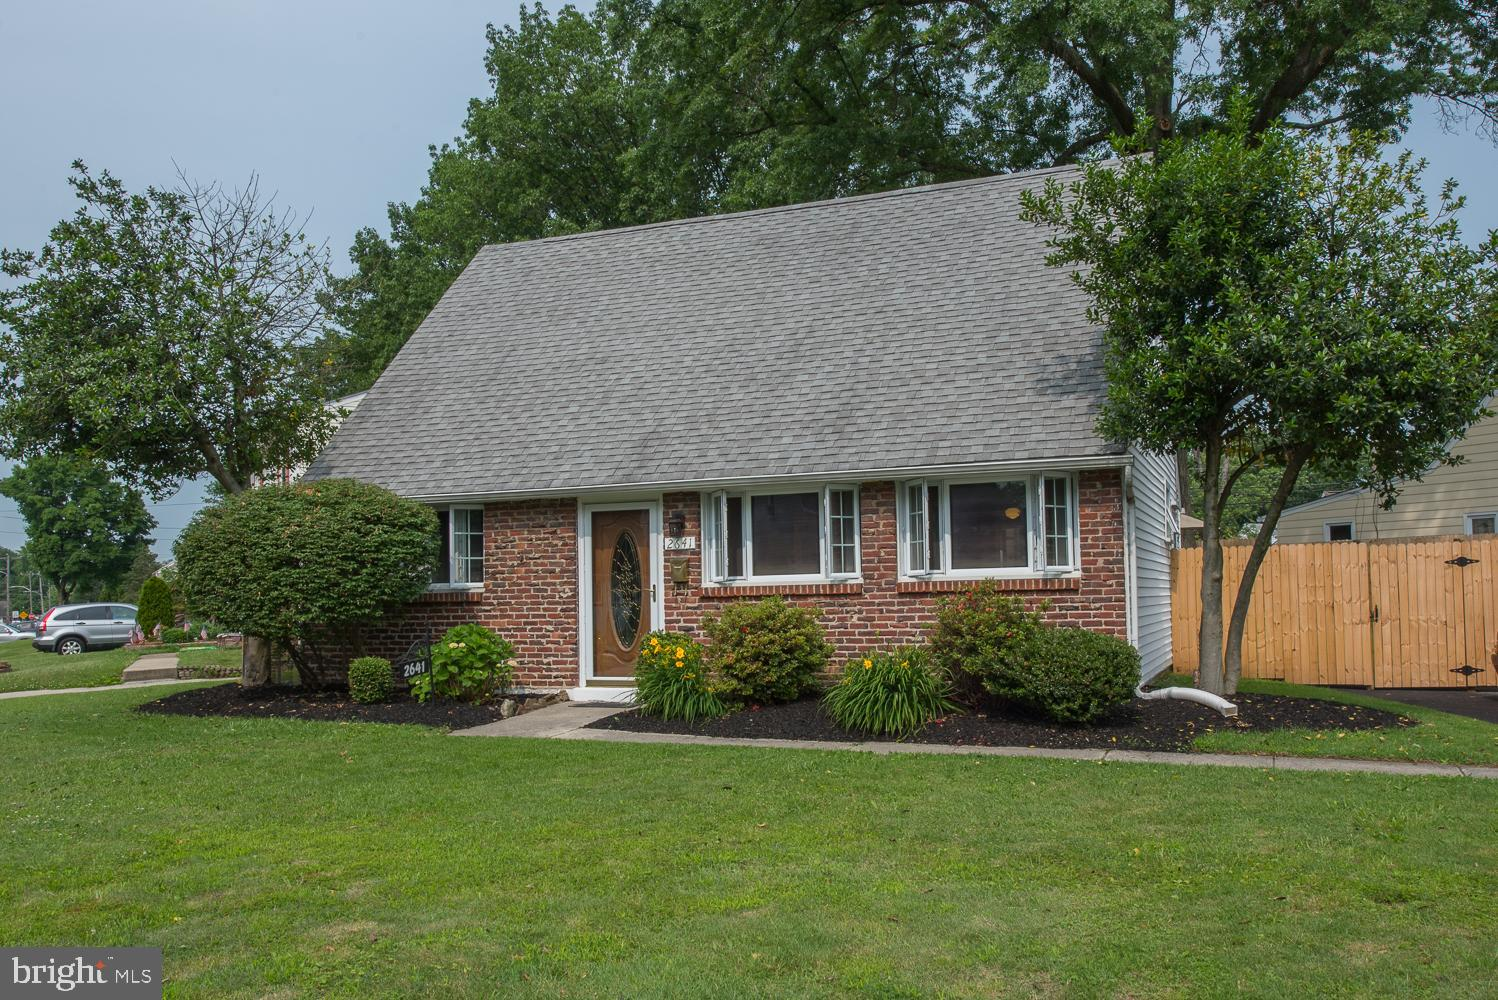 2641 ARMSTRONG AVENUE, HOLMES, PA 19043